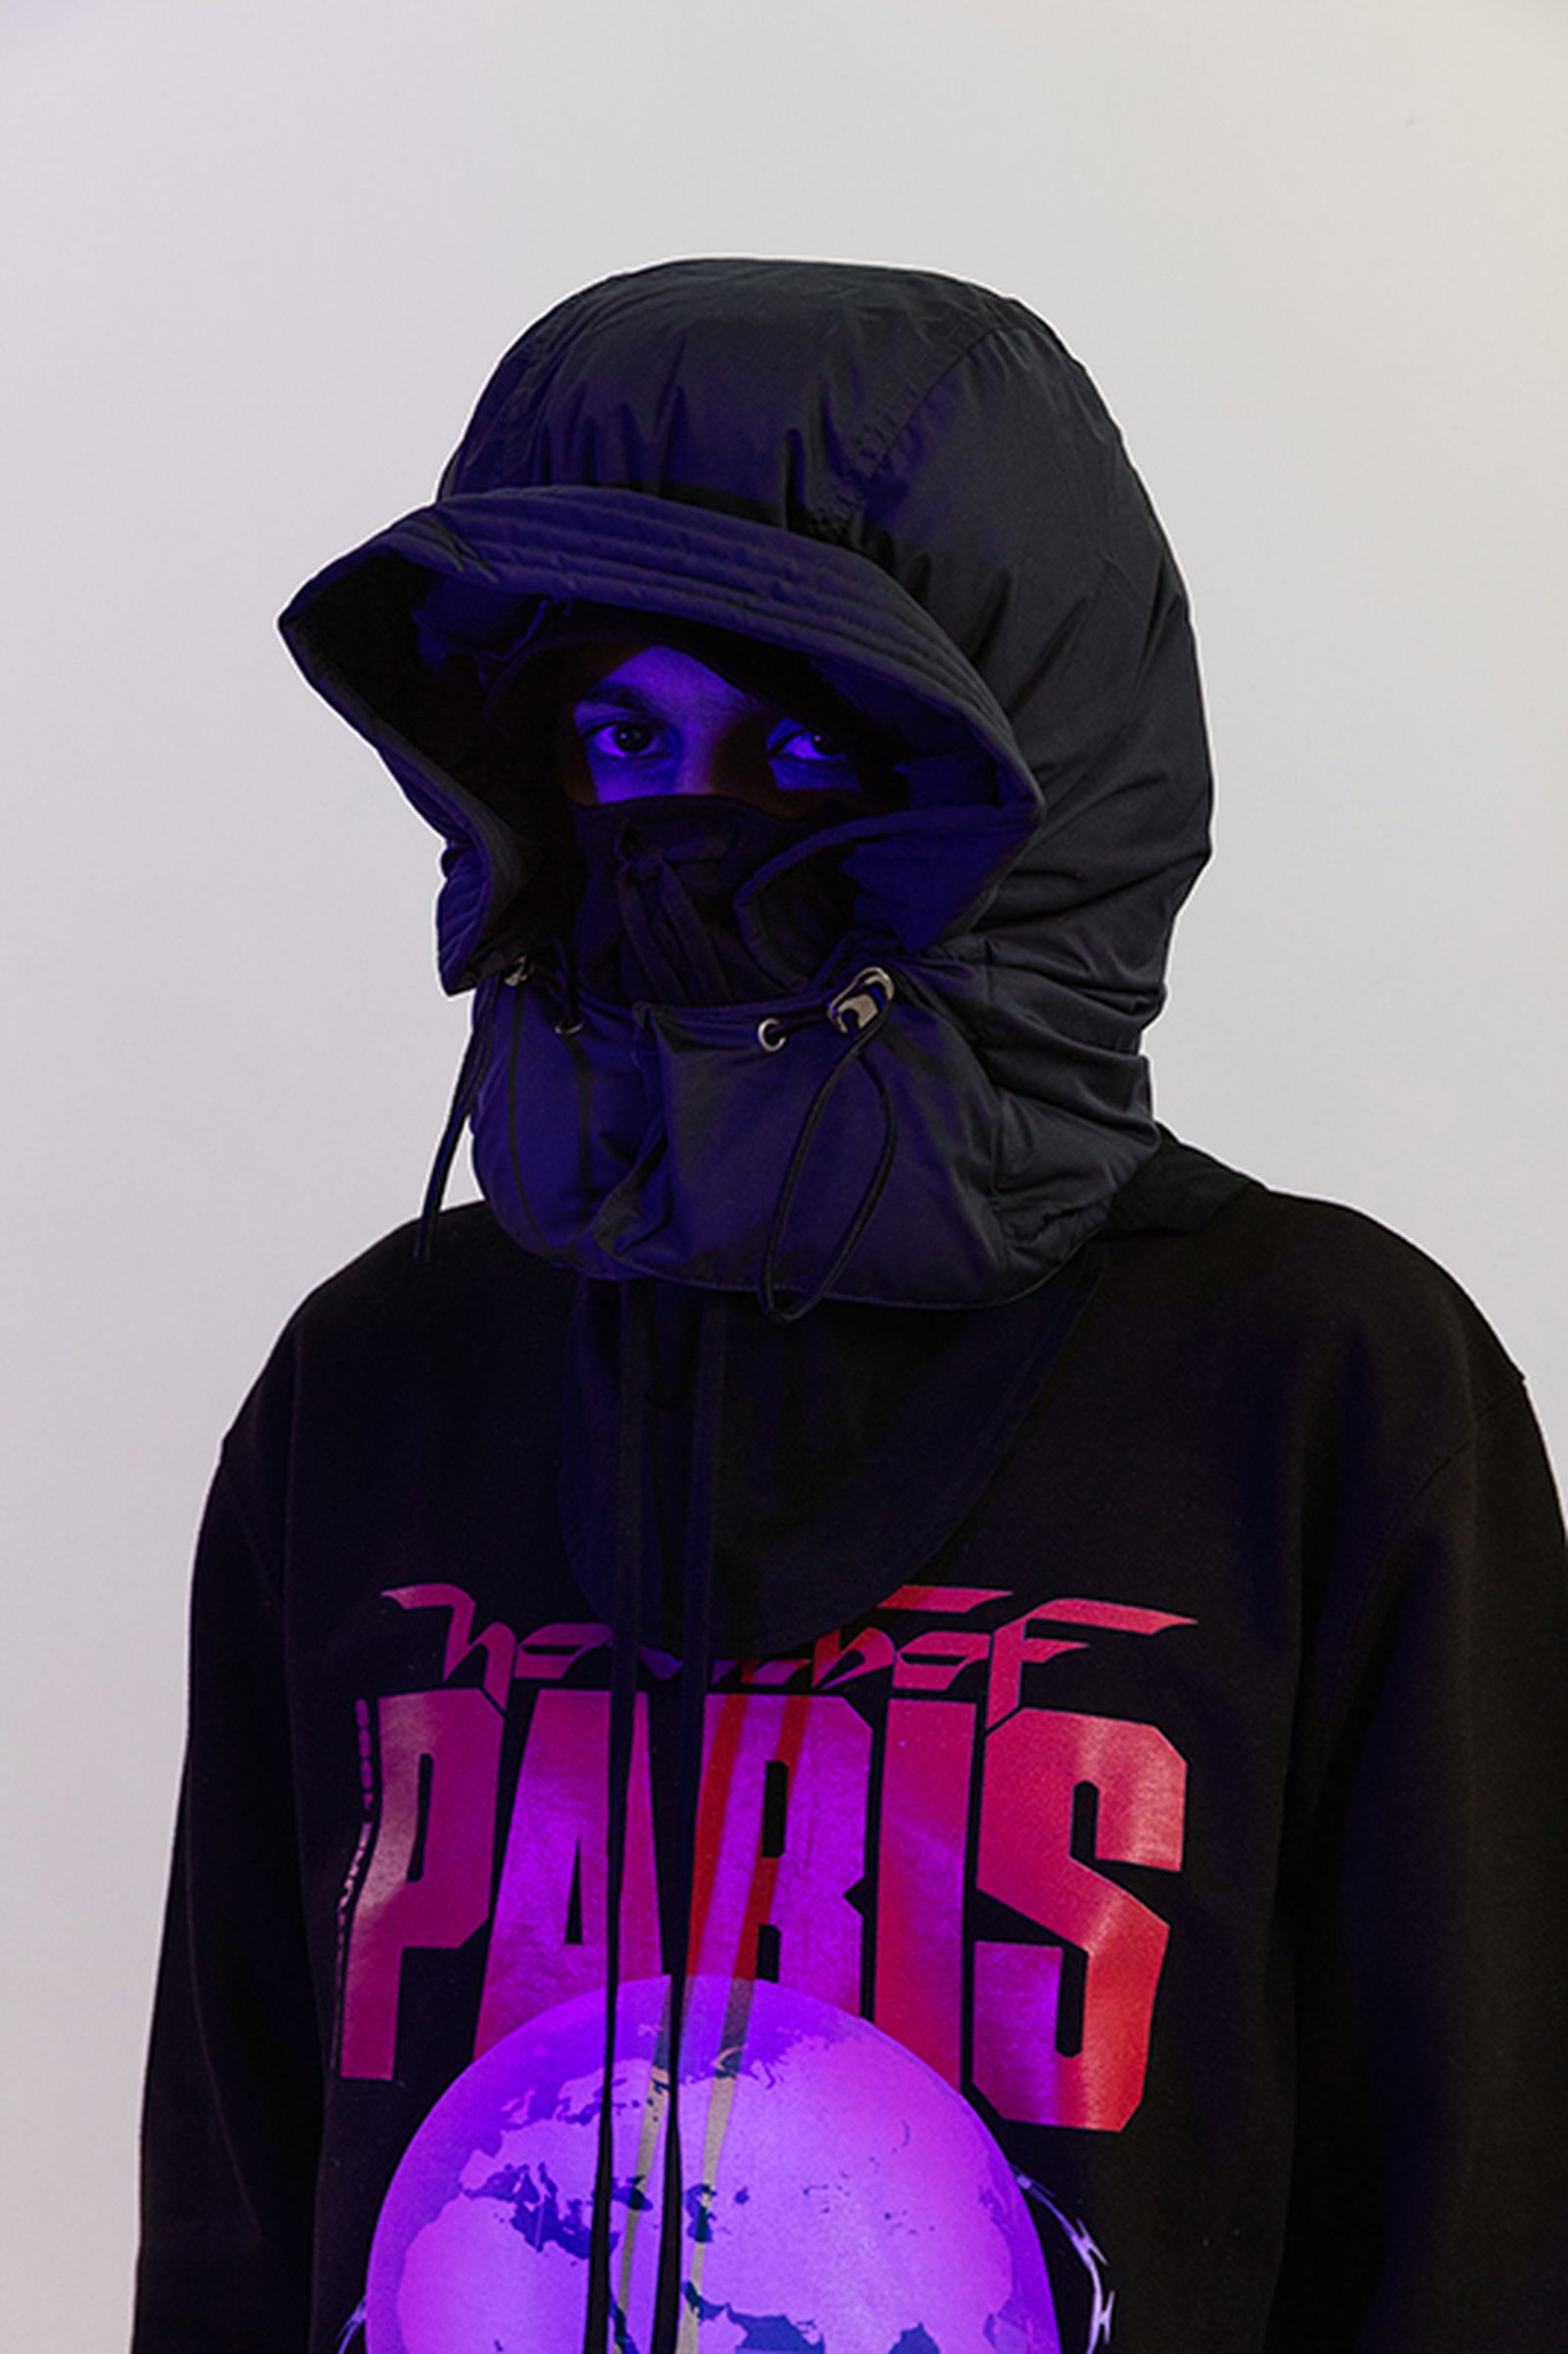 youth of paris ss19